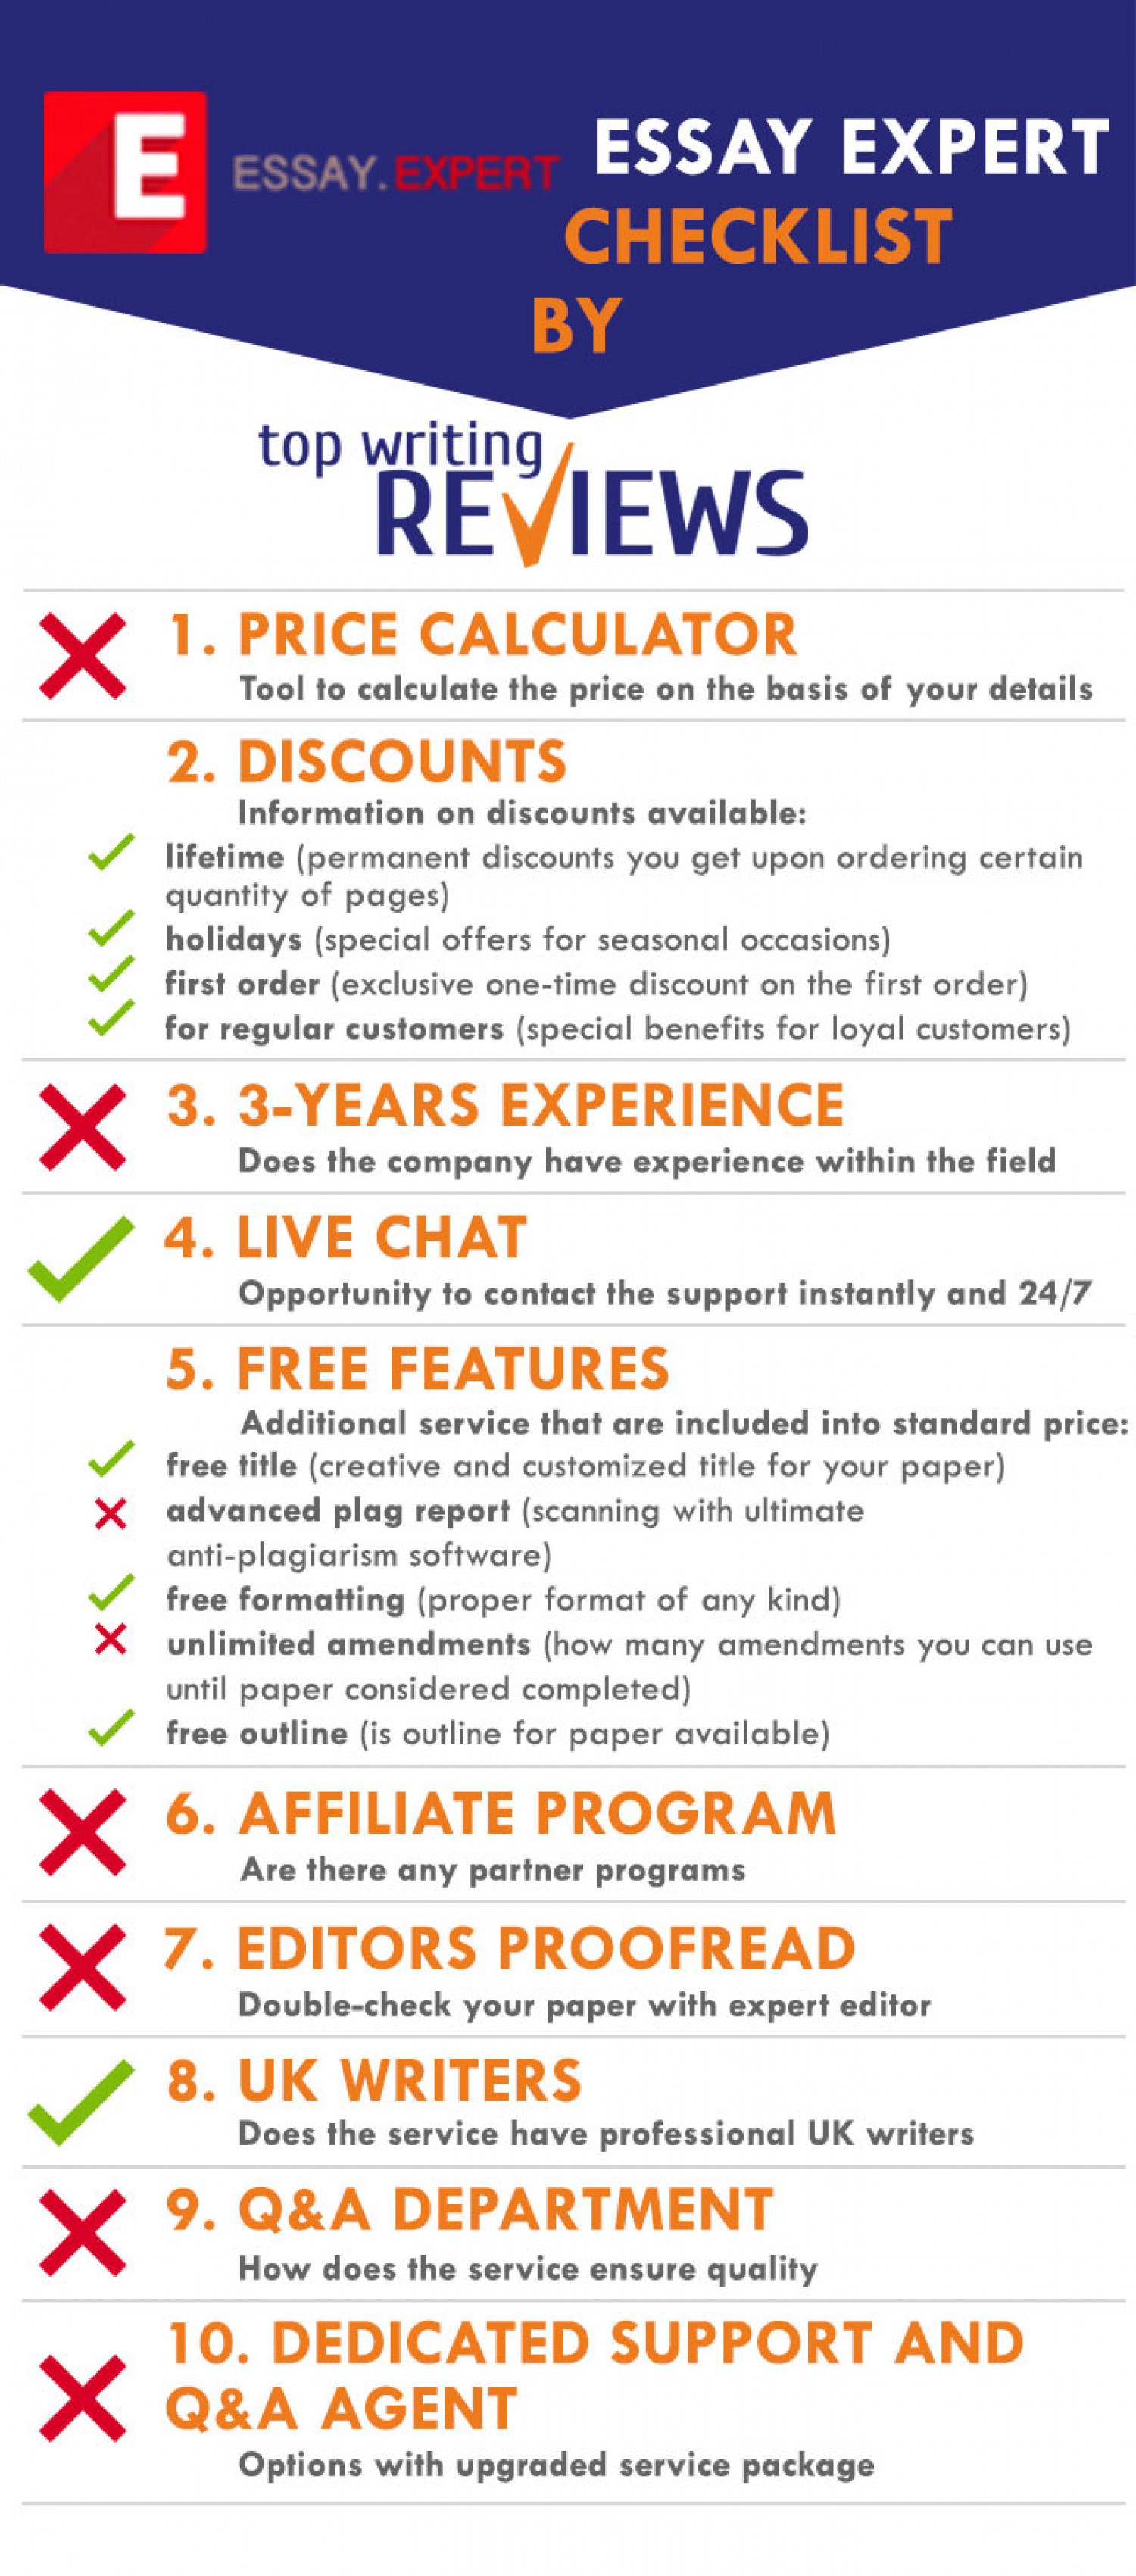 Read this checklist to find out all pros and cons of EssayExpert writing service Infographic